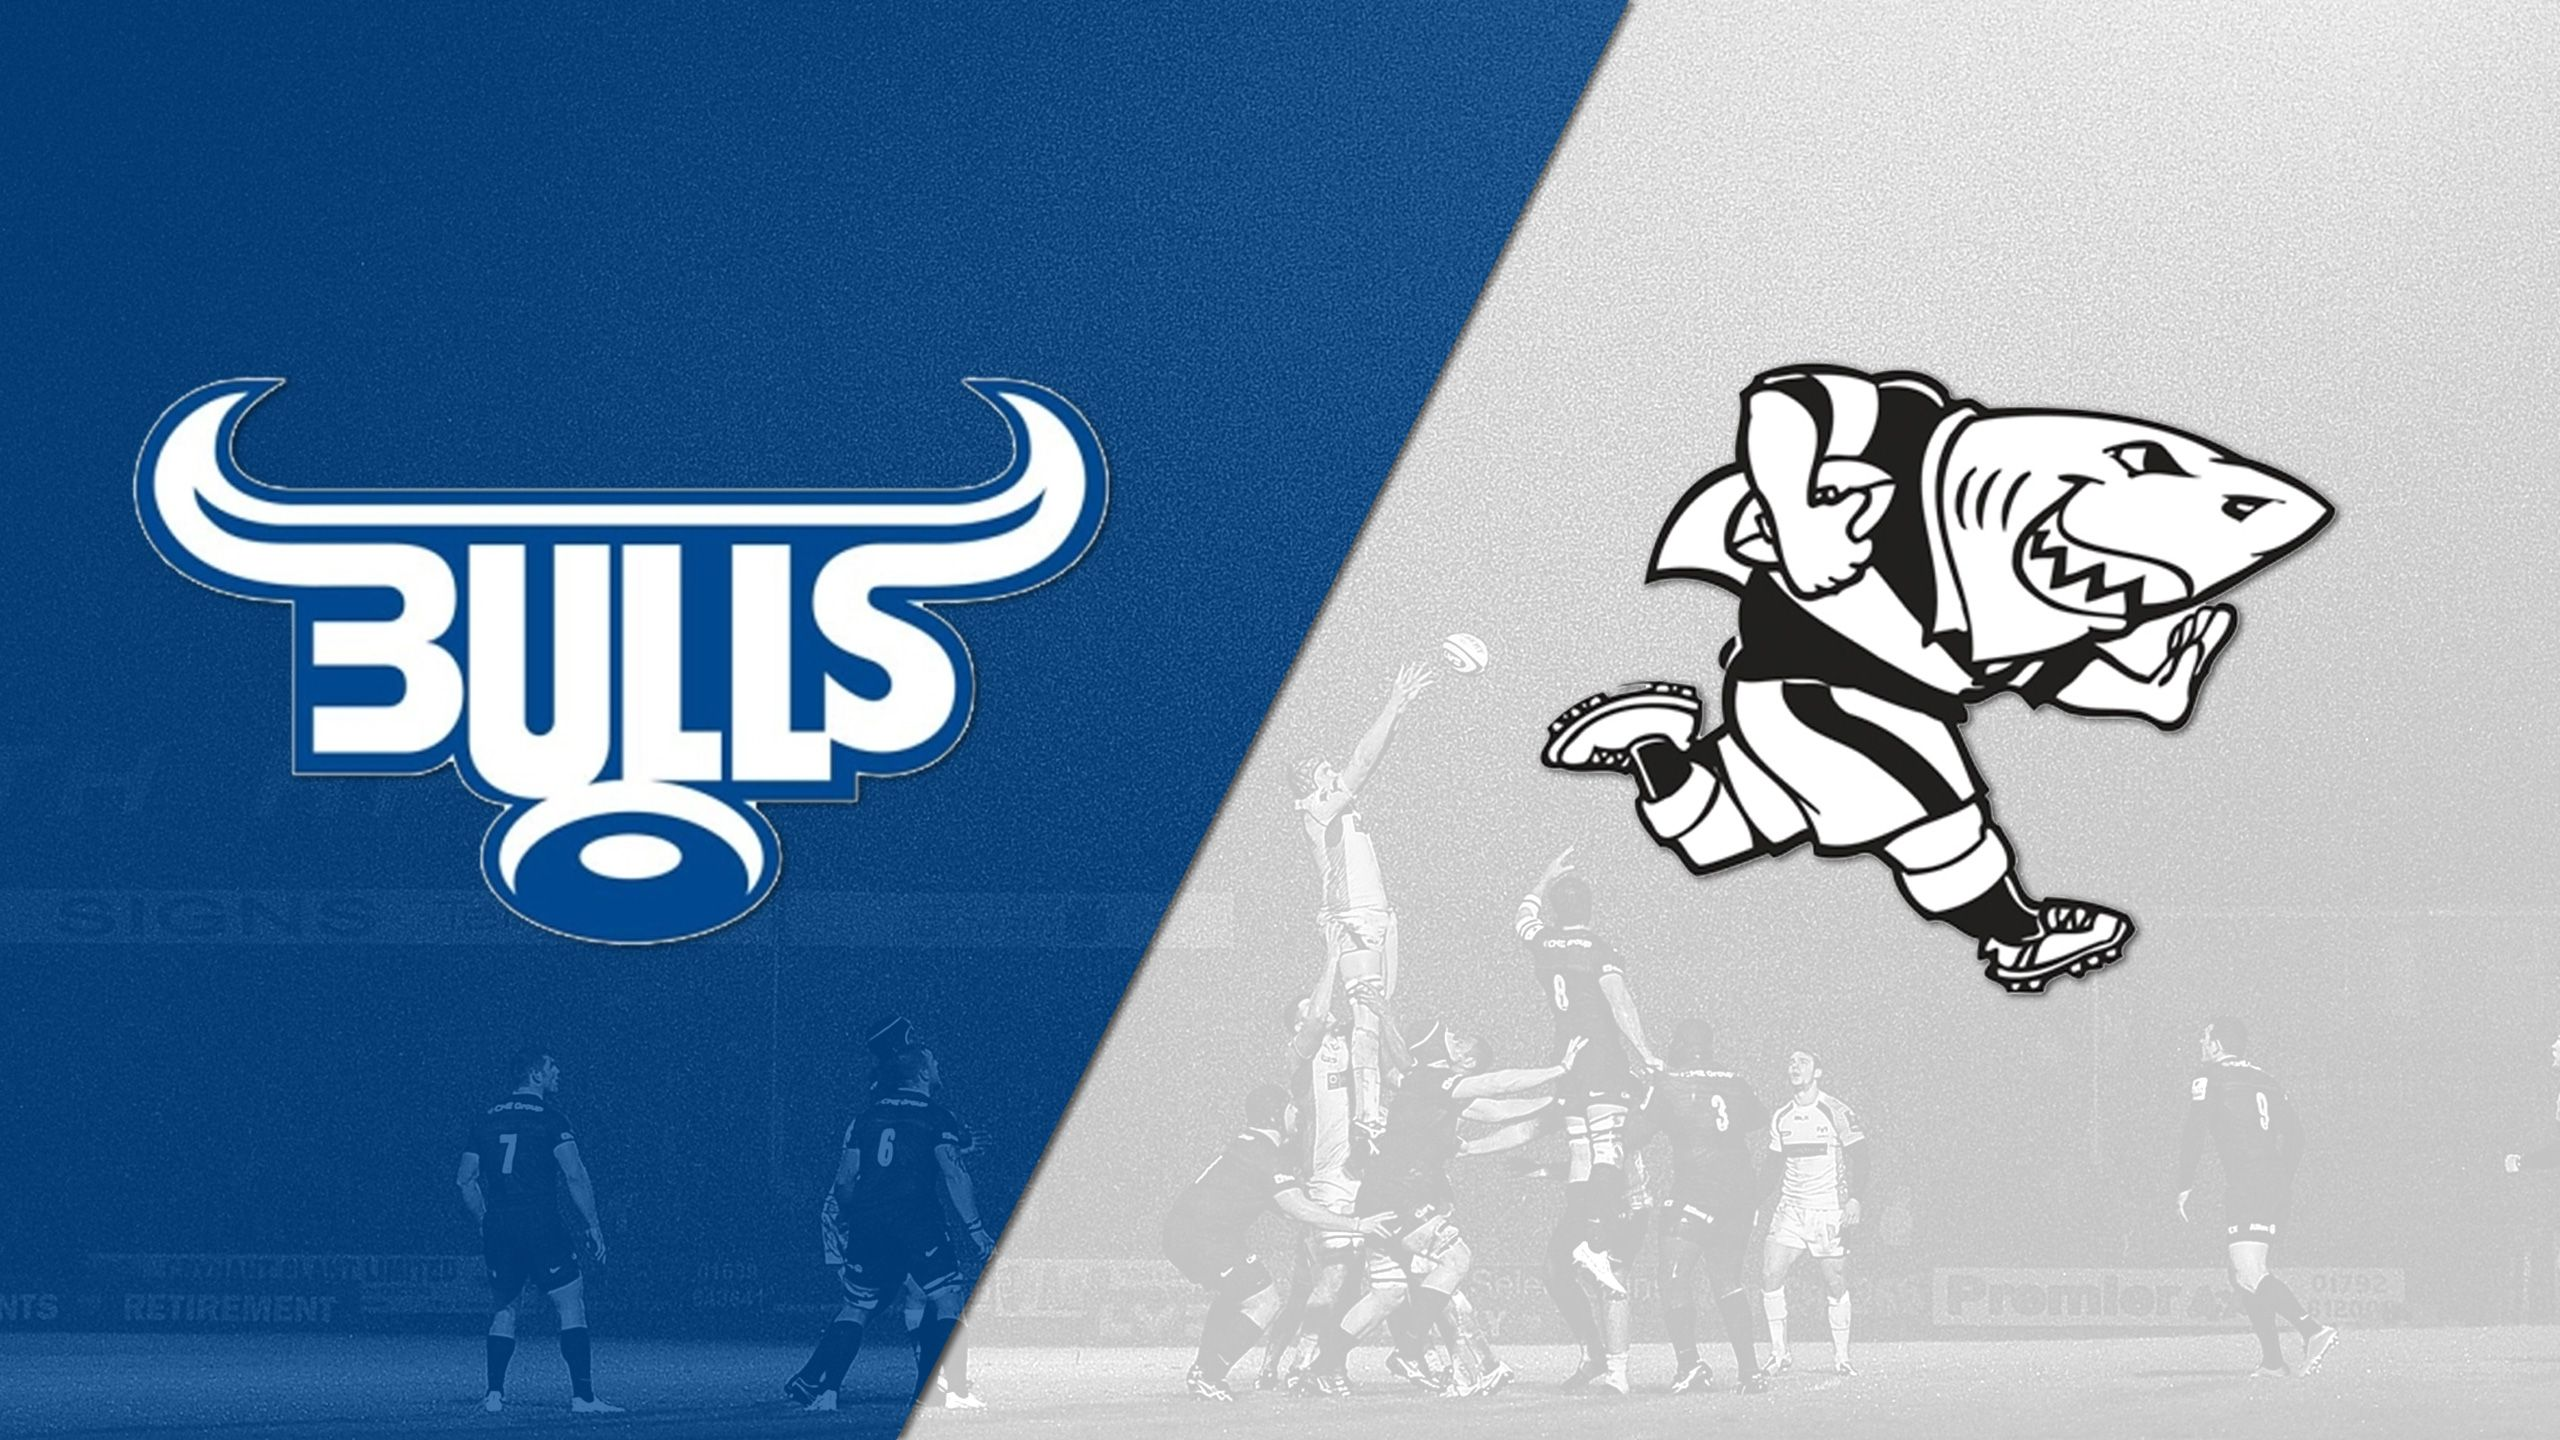 Blue Bulls vs. Sharks (Semifinals) (Currie Cup)